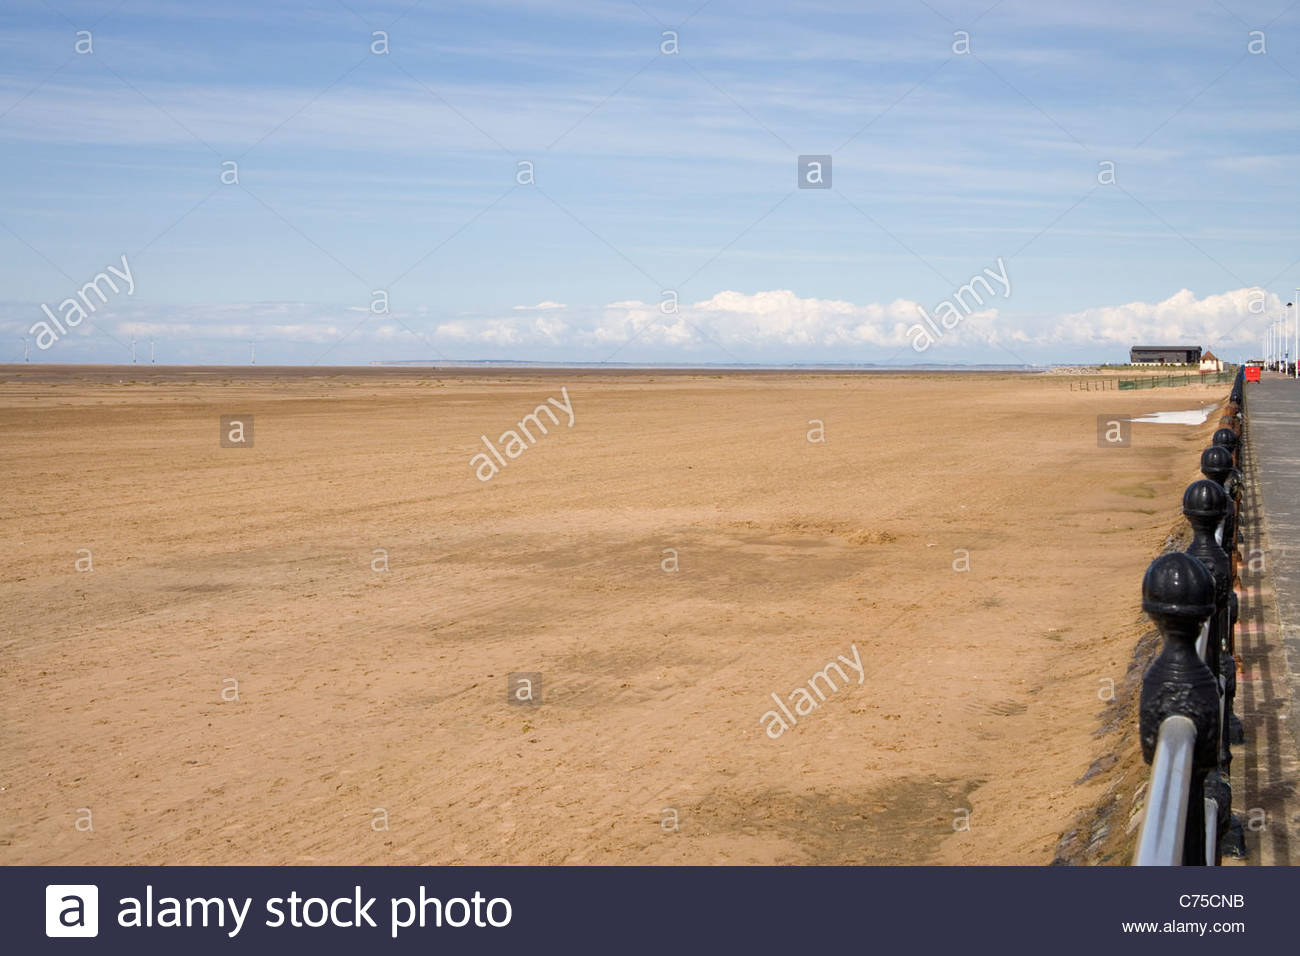 Hoylake on the wirral coast Stock Photo